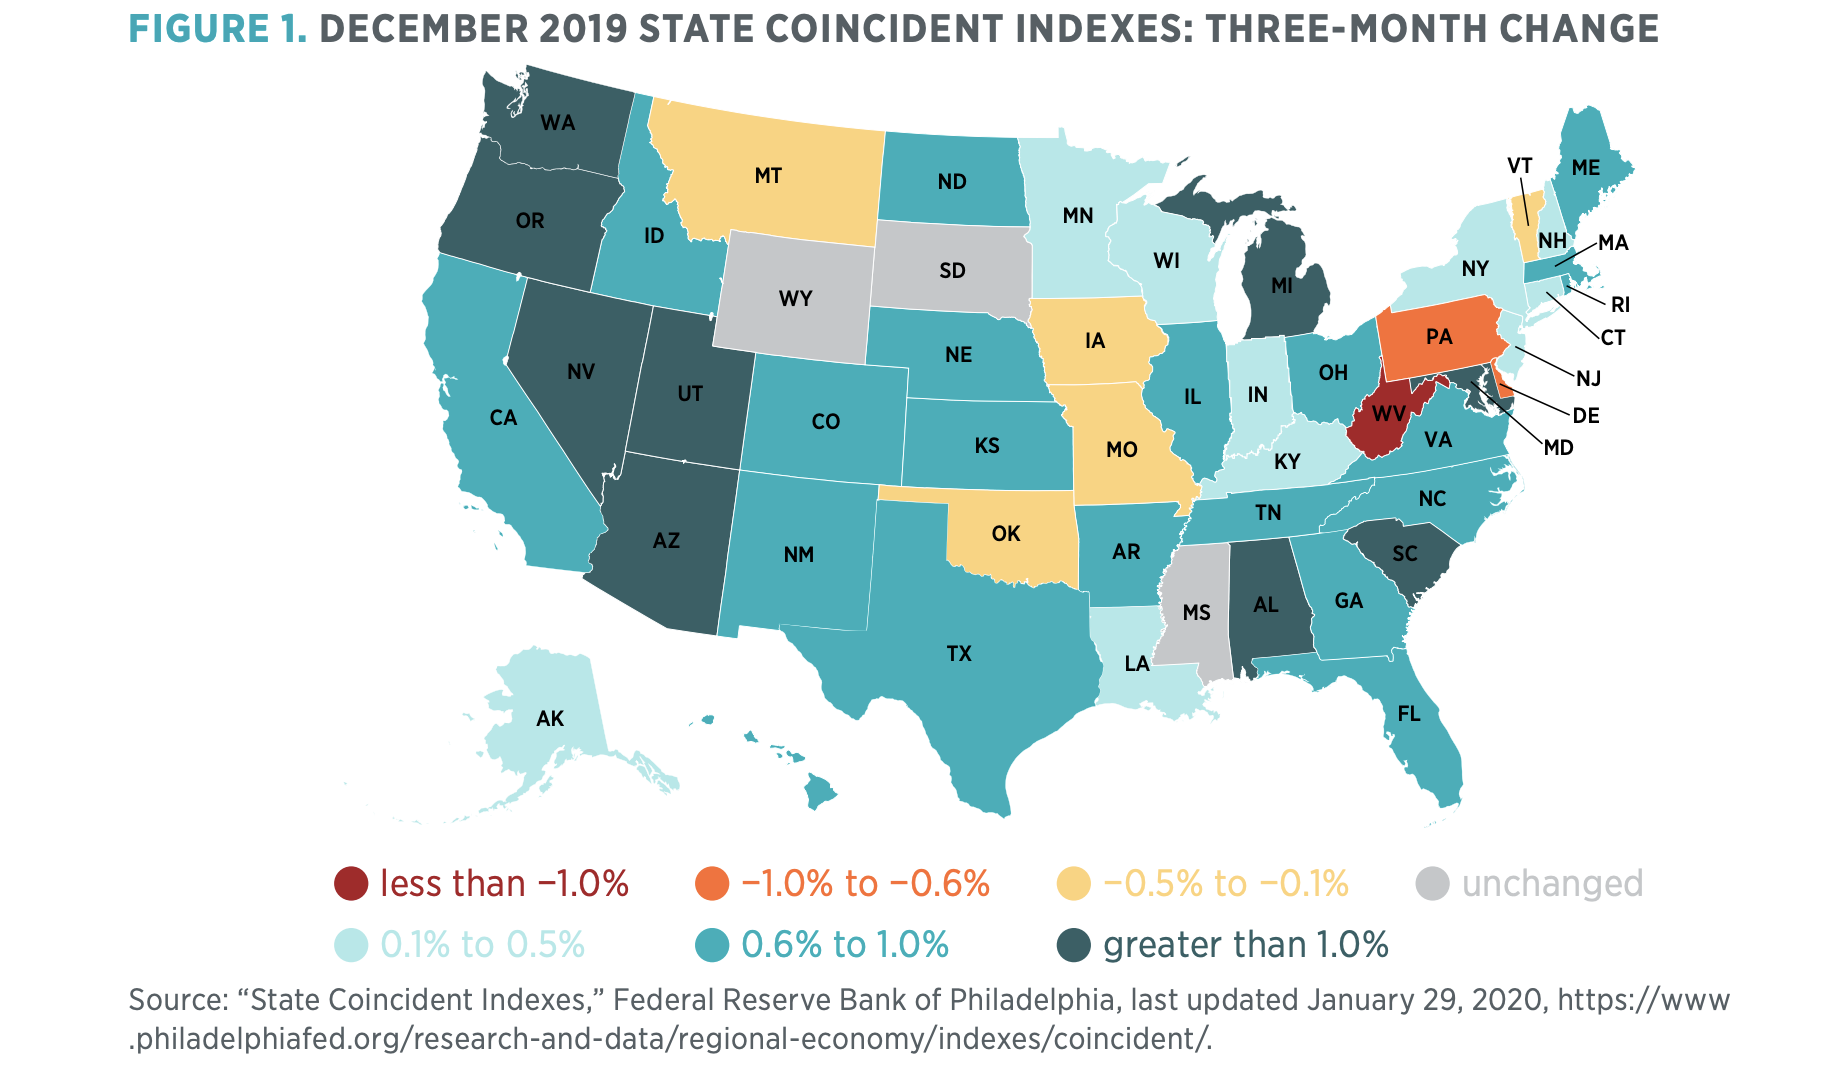 Figure 1. December 2019 State Coincident Indexes: Three-Month Change